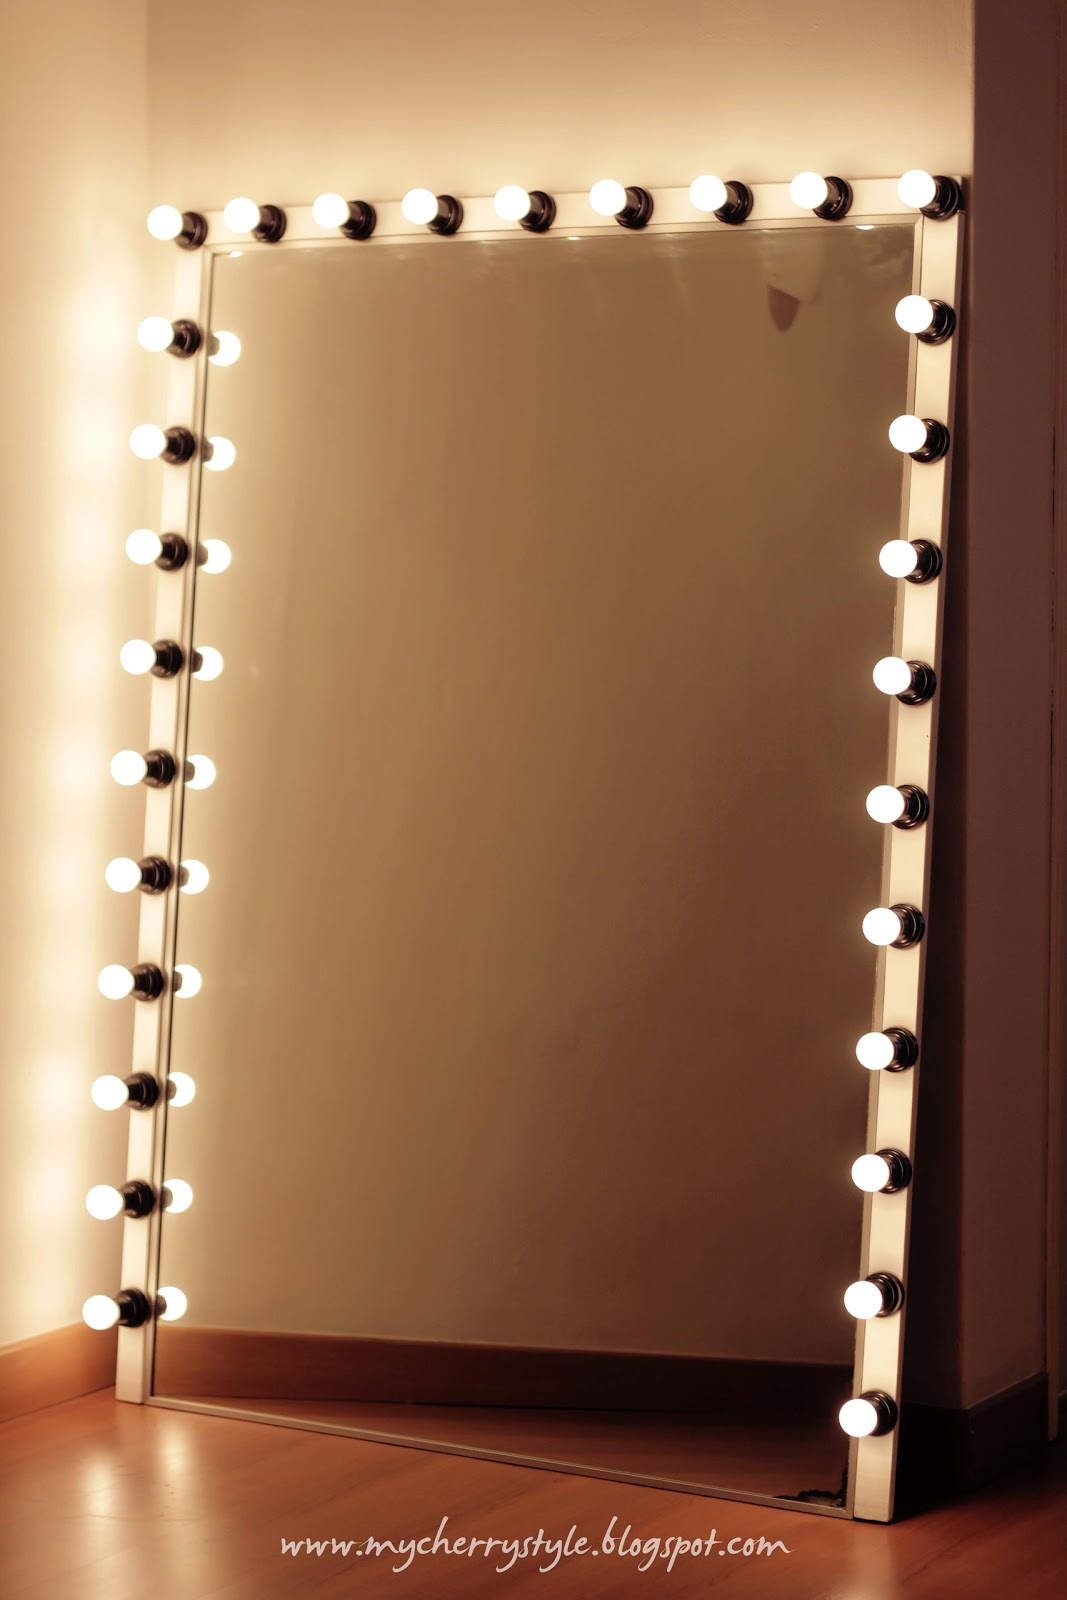 Vanity Mirror With Lights Sam S Club : DIY Hollywood-style mirror with lights! Tutorial from scratch. for real.